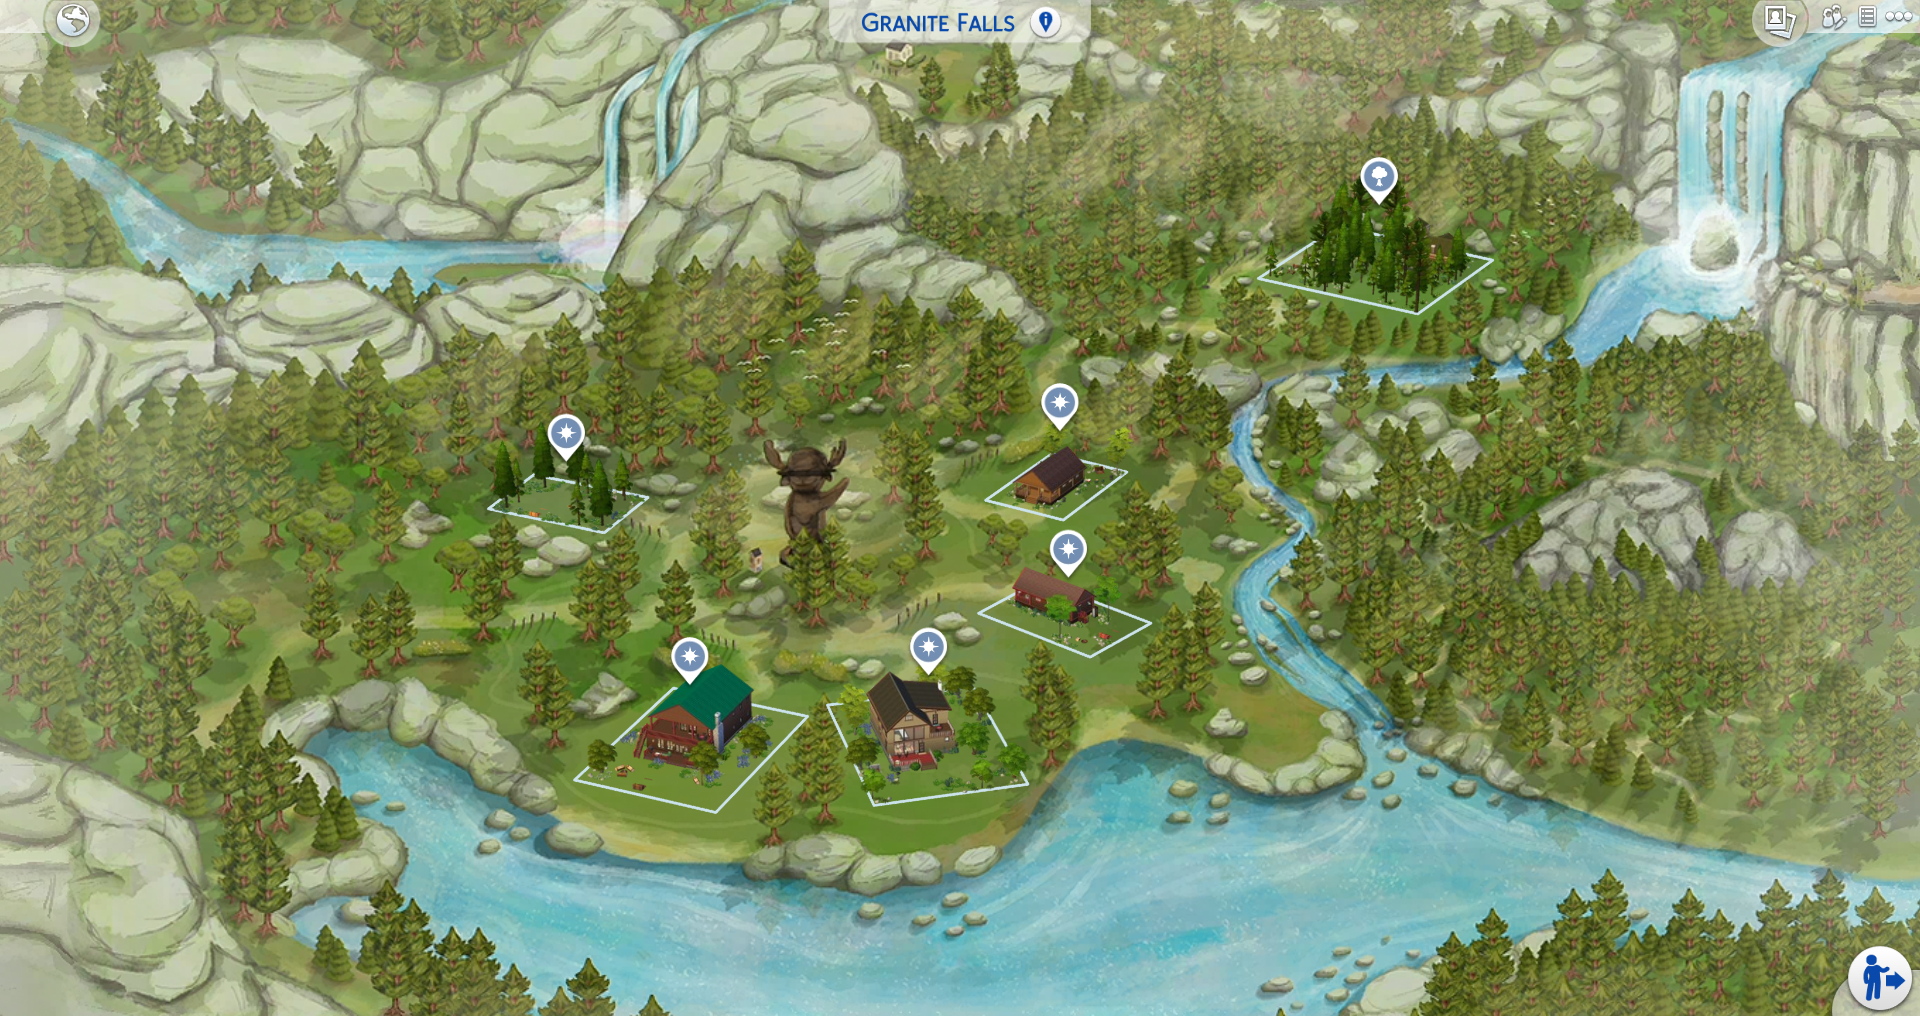 sims 4 world map download The Sims 4 World Map Replacements For All Worlds Now Available